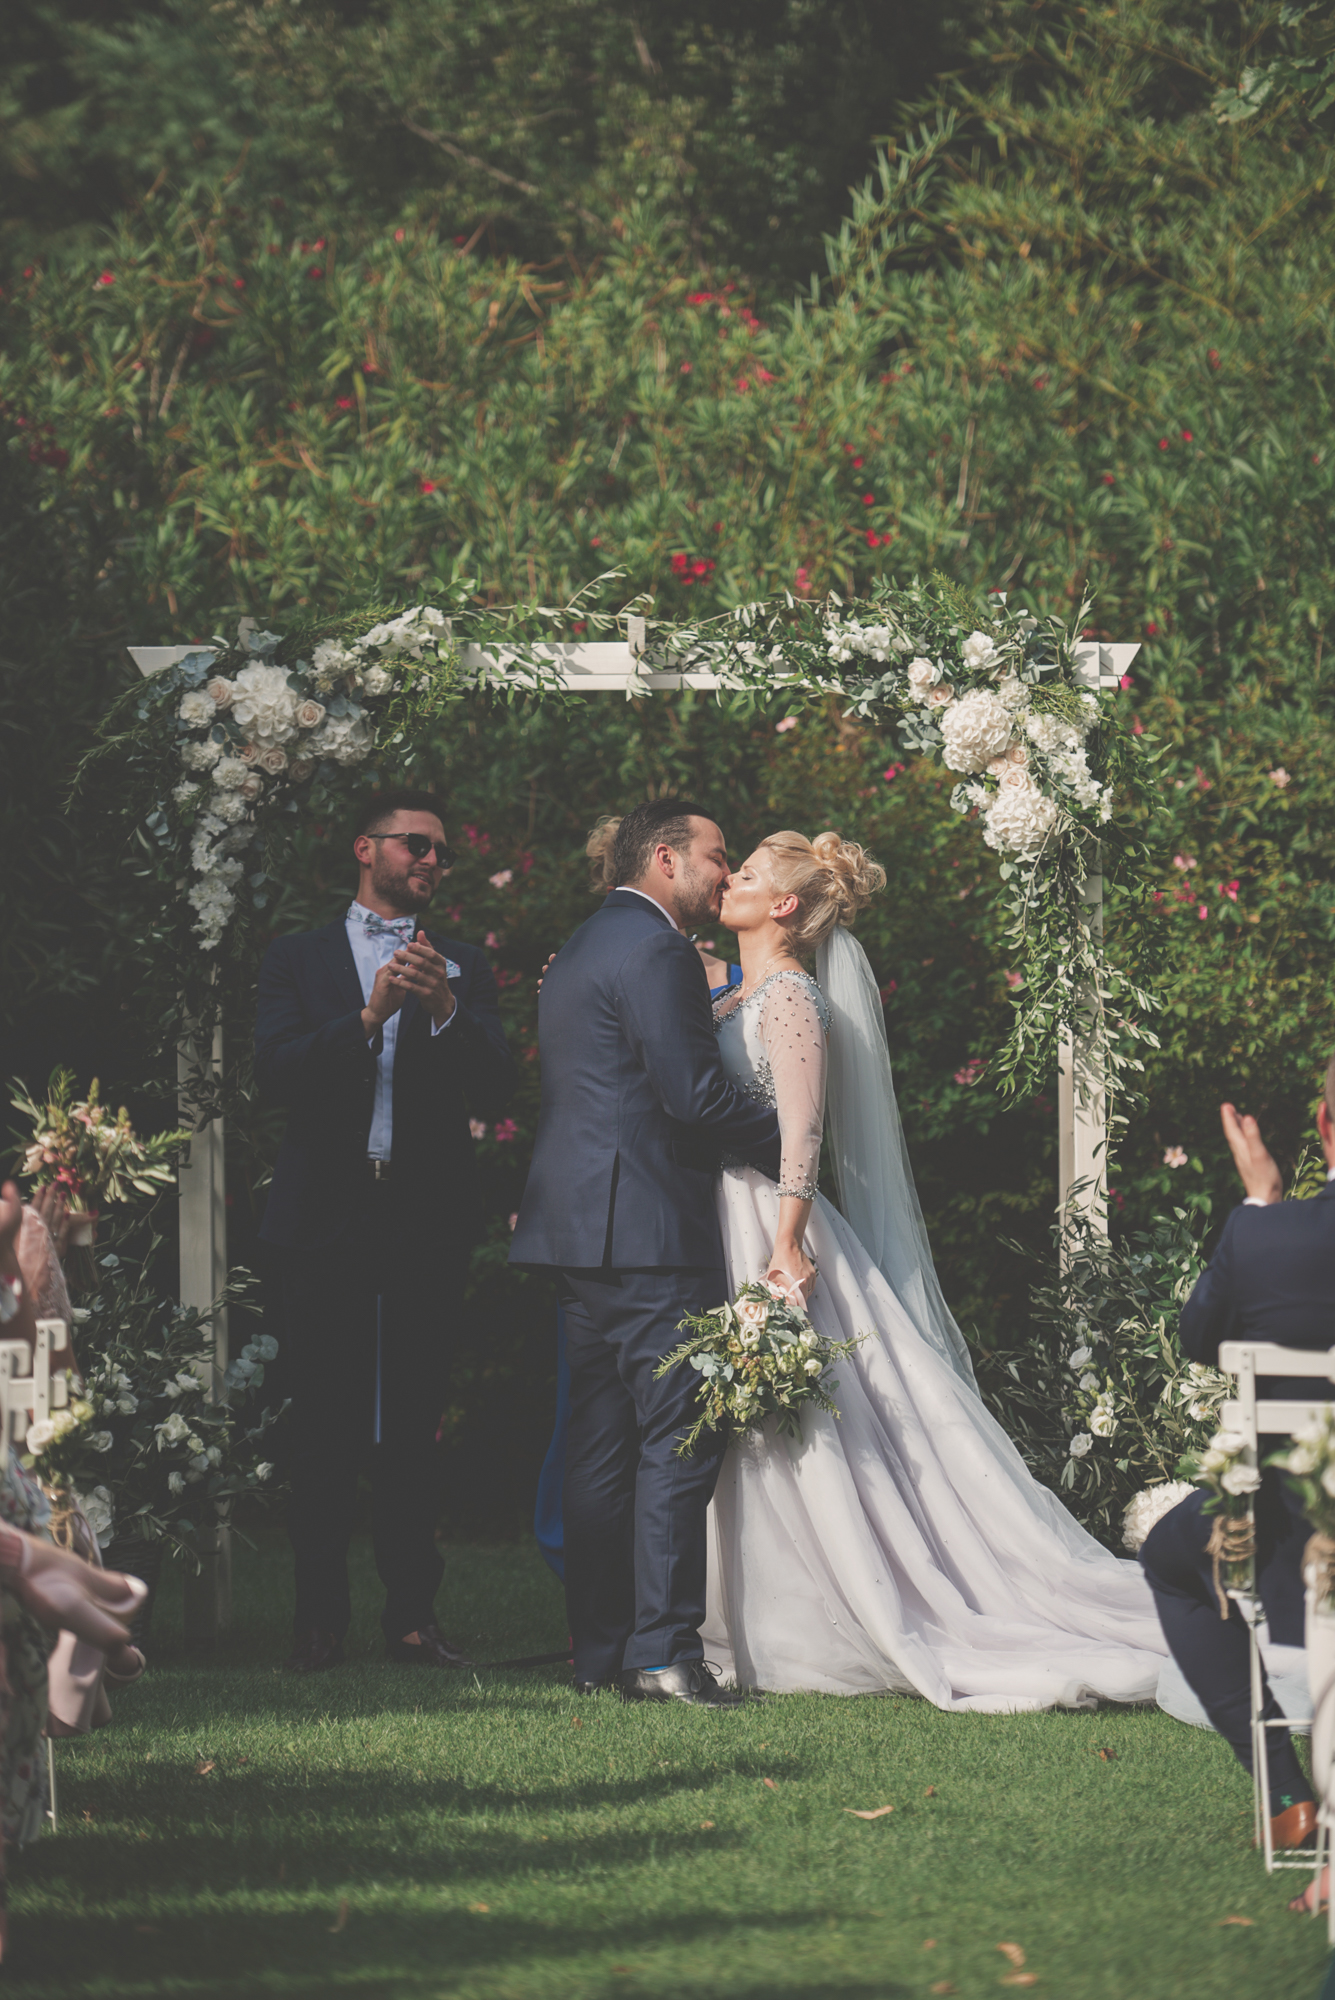 Outdoor wedding ceremony in Provence